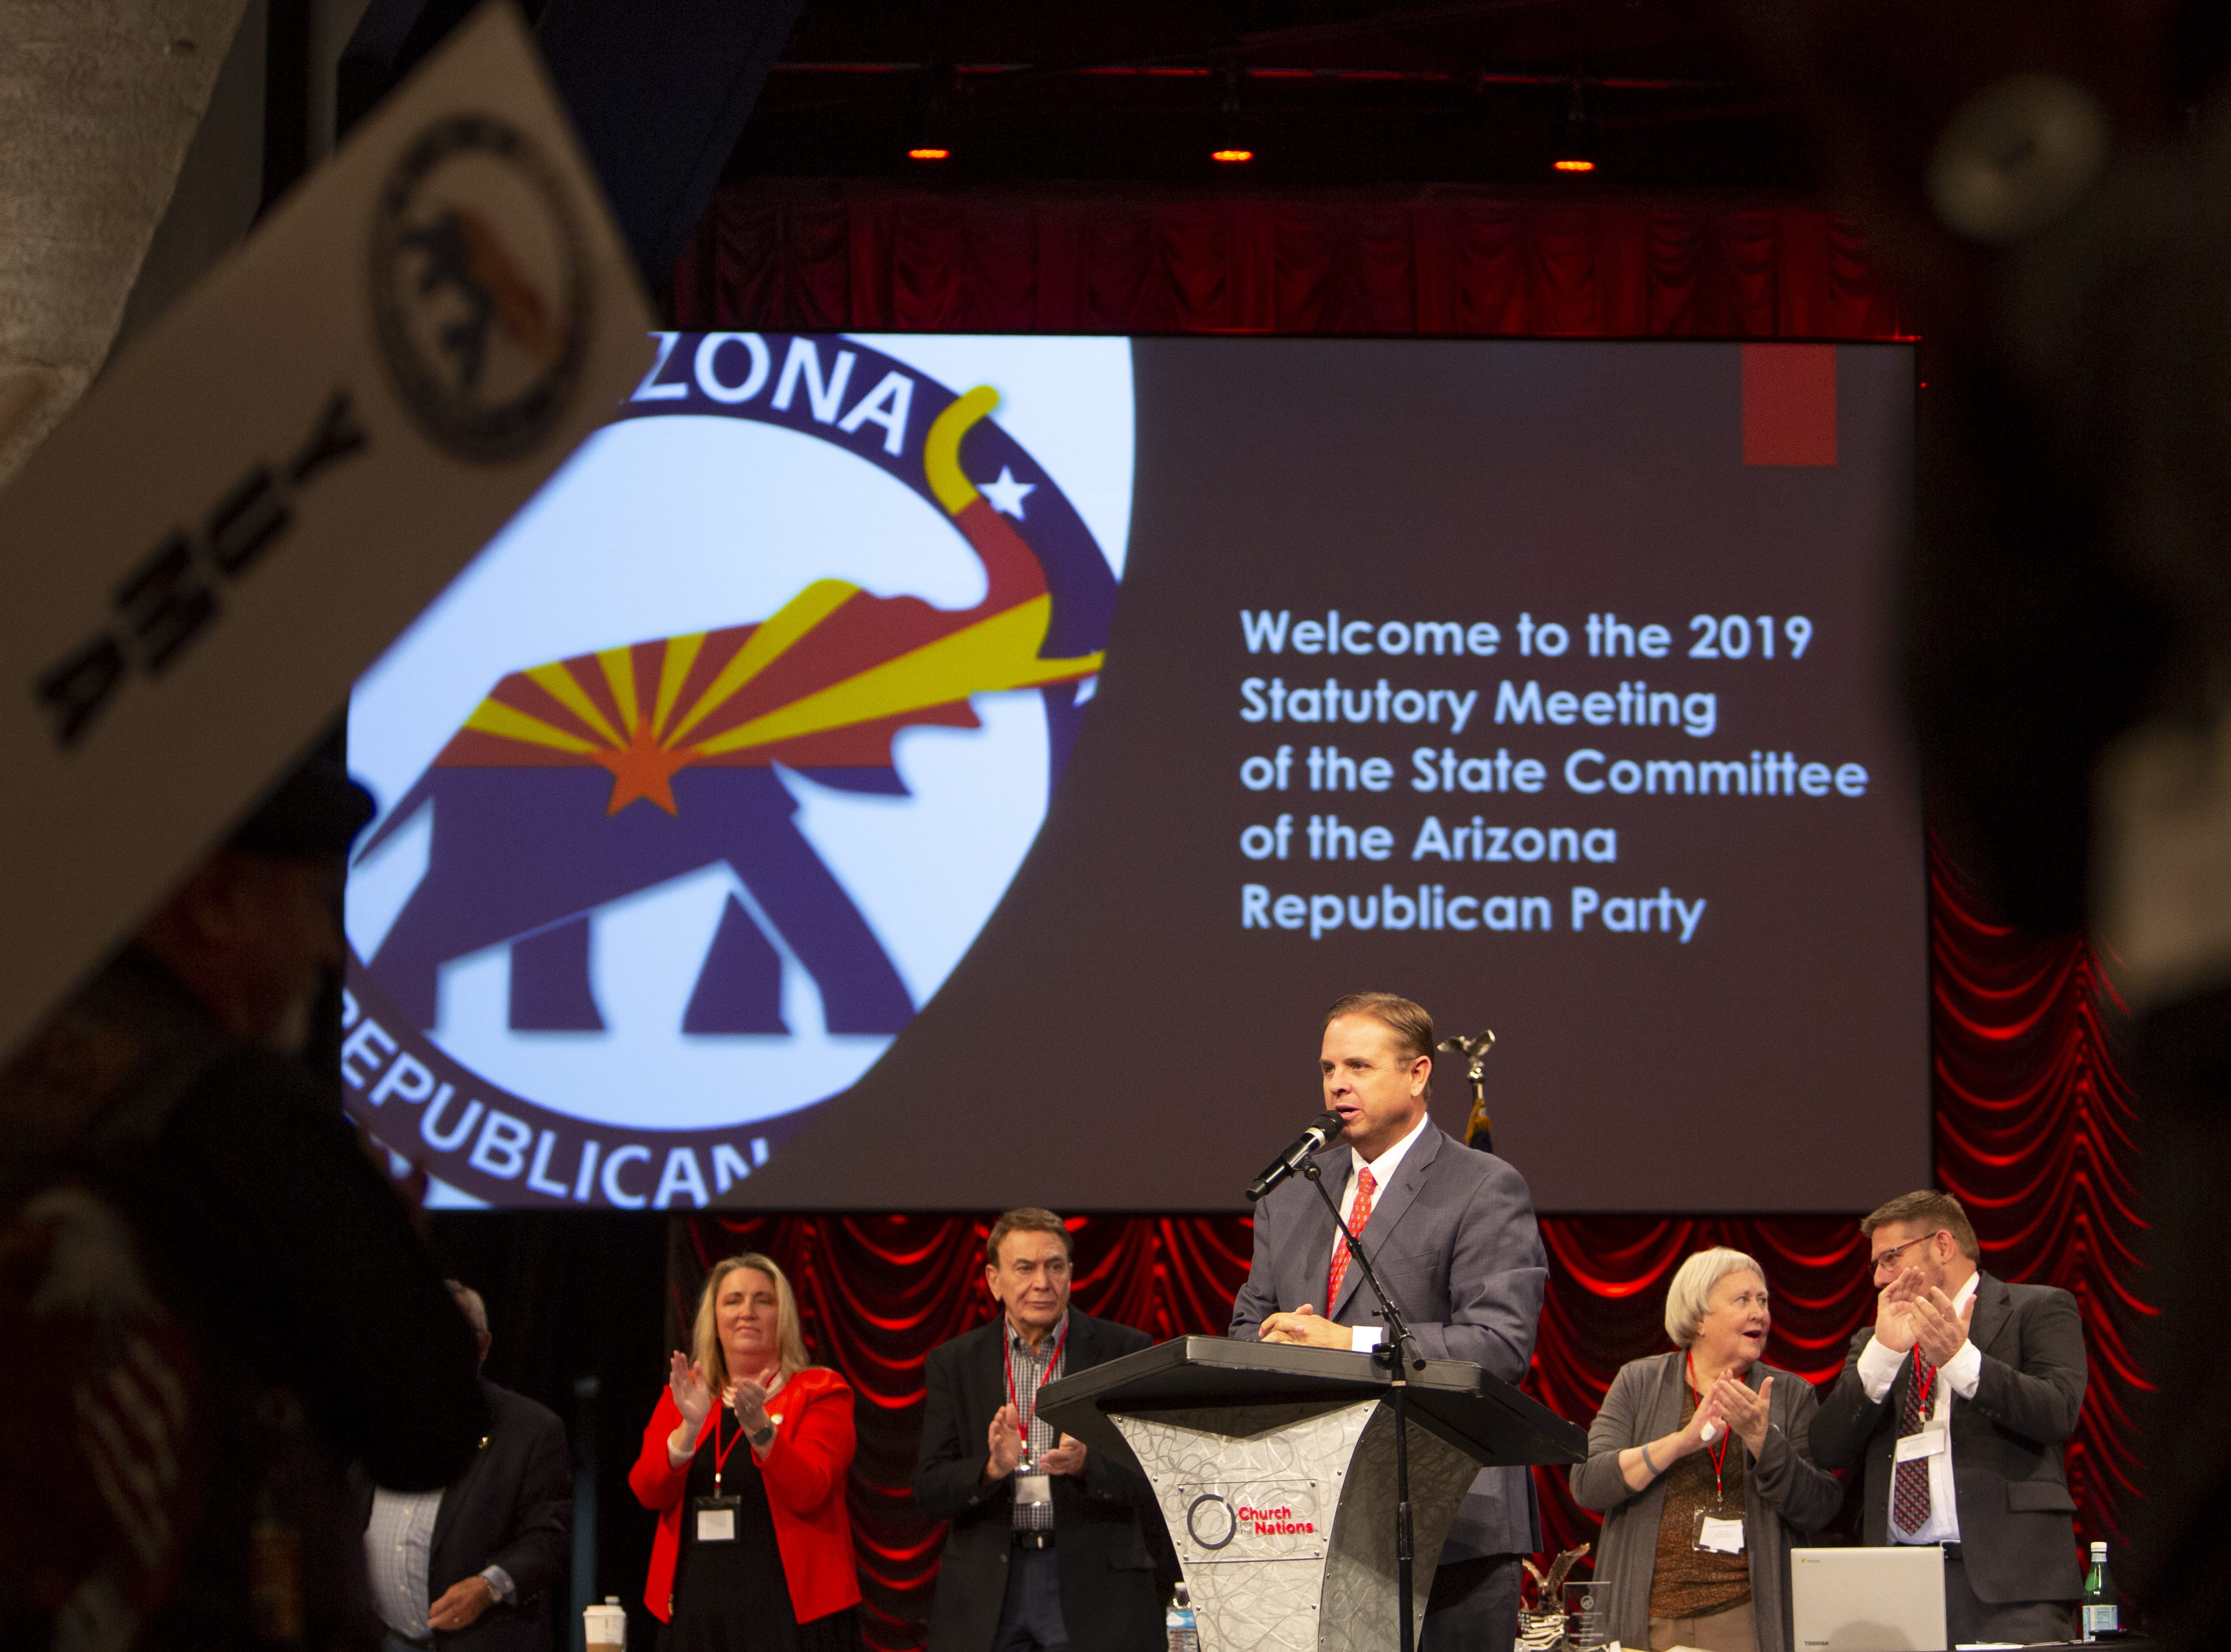 Chairman of the Arizona Republican Party Jonathan Lines speaks during the Statutory Meeting of the State Committee of the Arizona Republican Party at Church for the Nations on Saturday, Jan. 26, 2019.